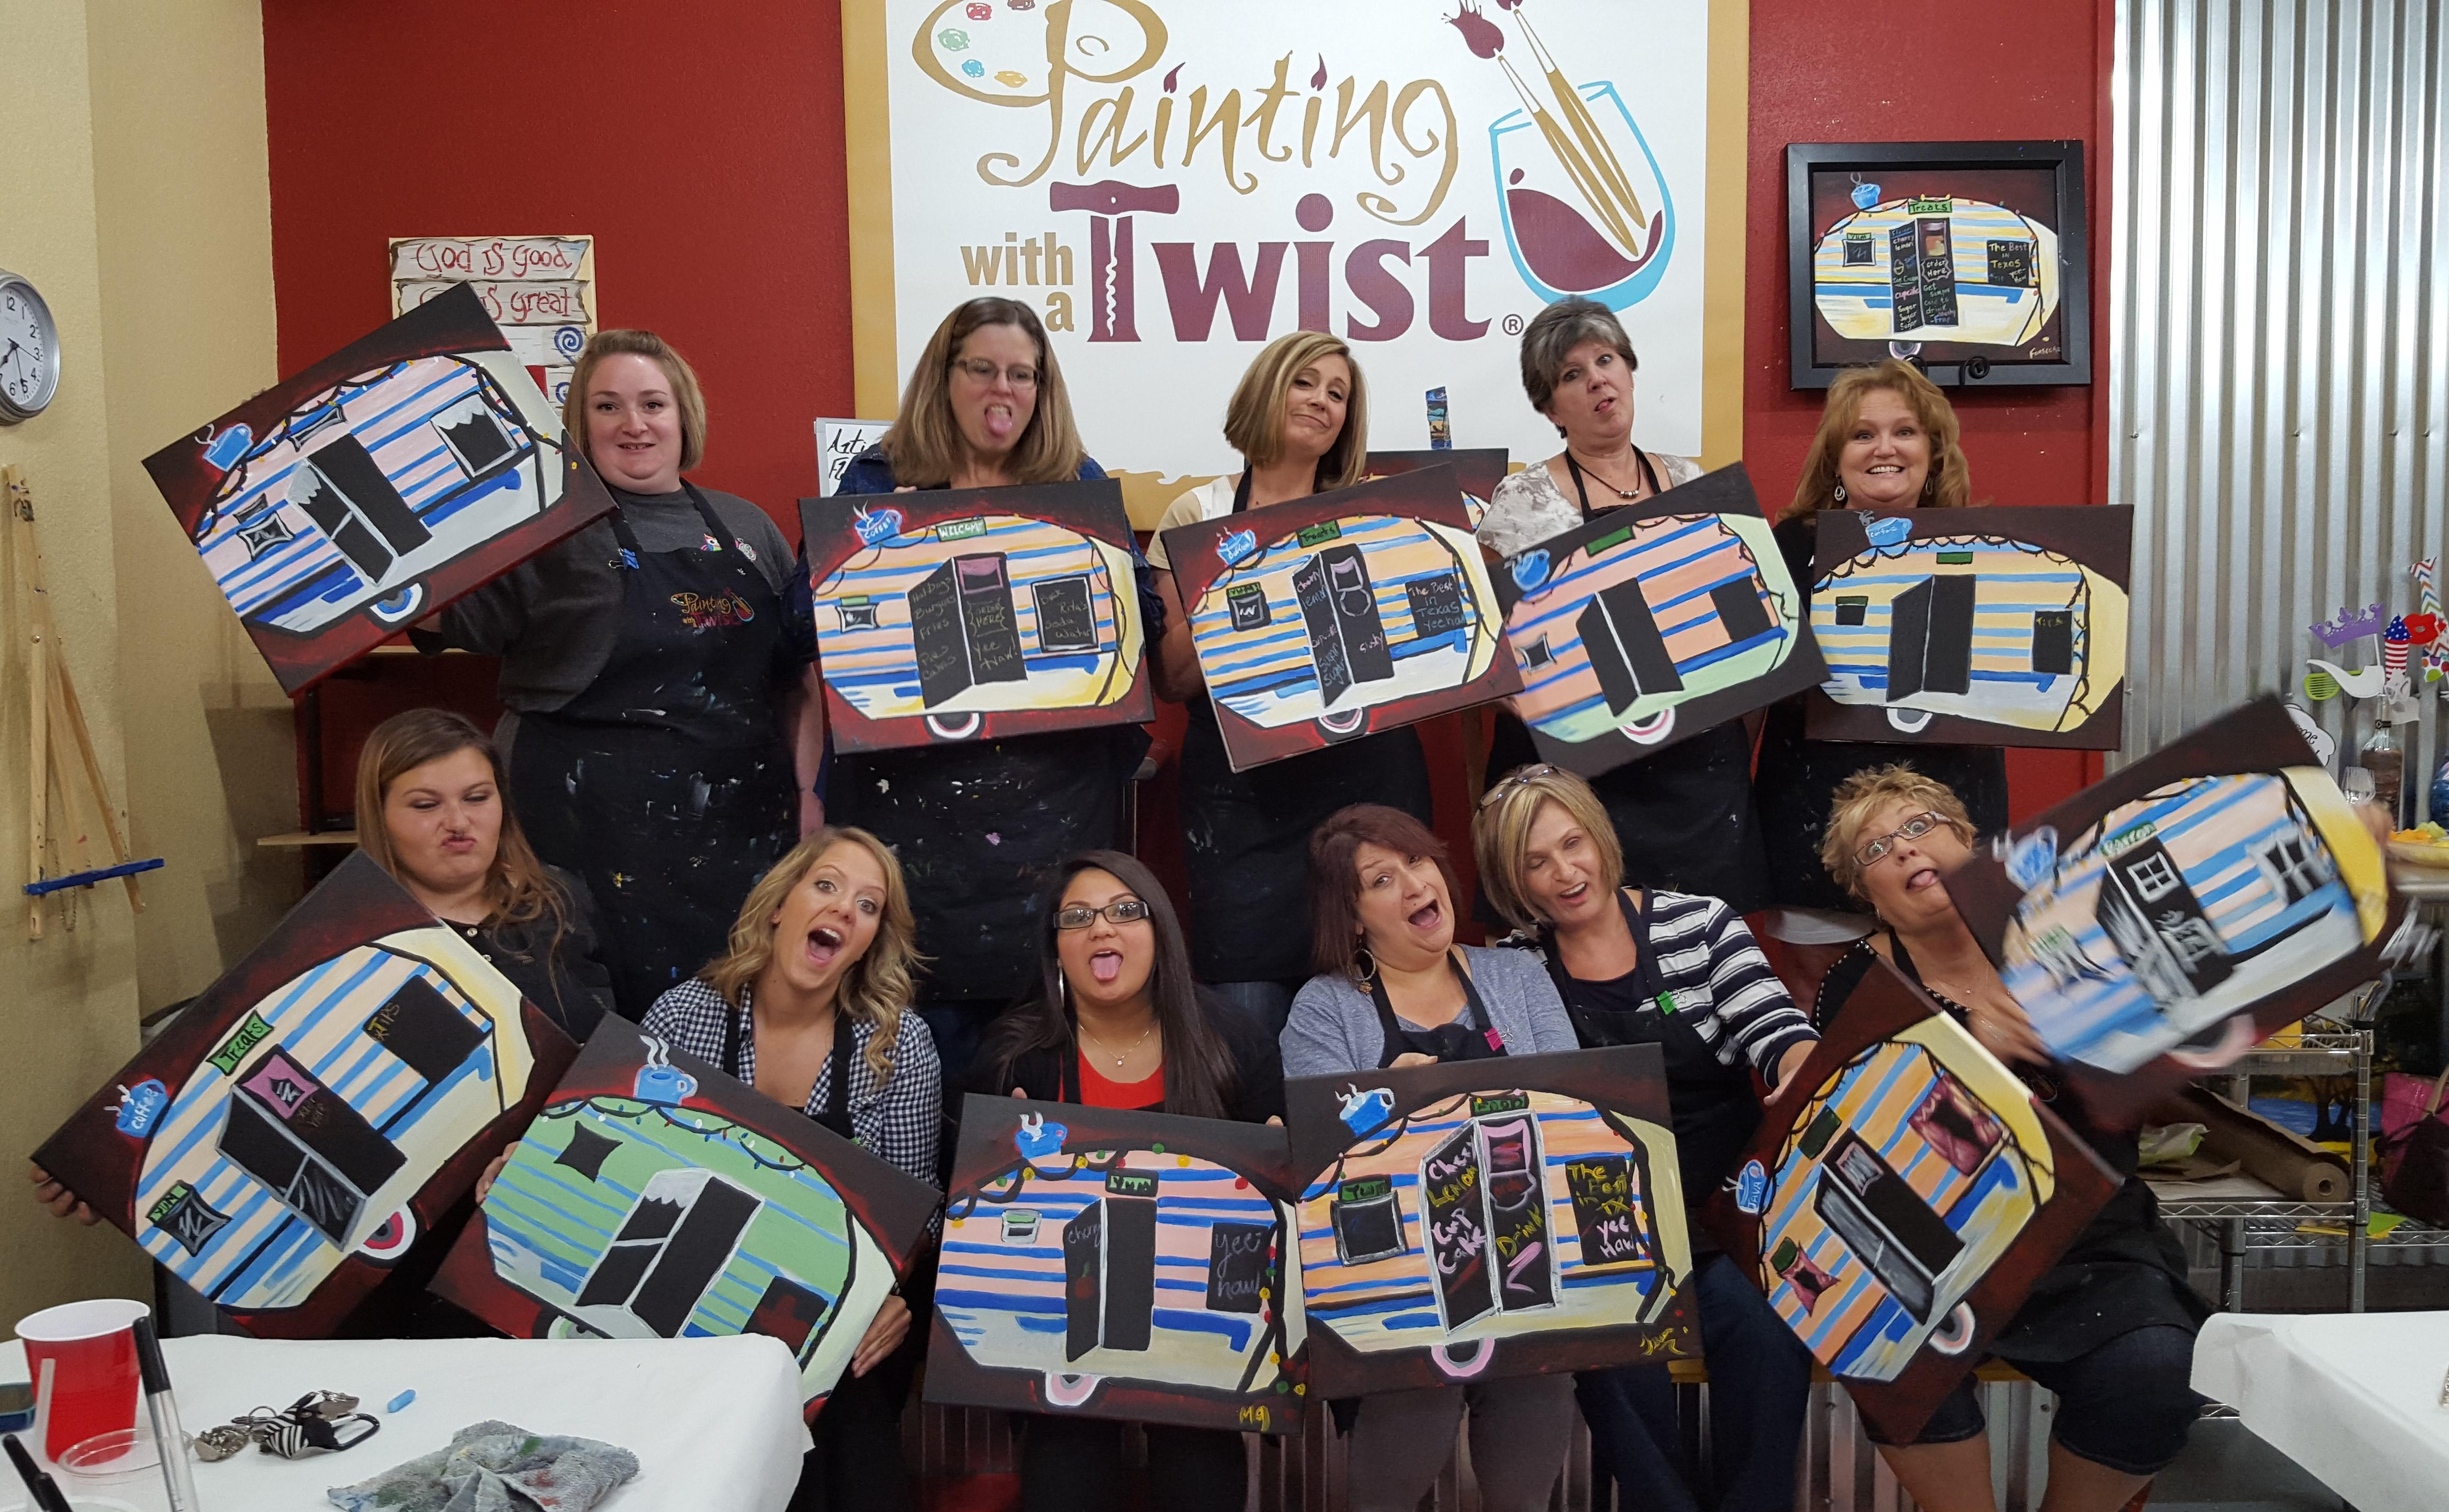 Painting with a twist granbury tx company page for Painting with a twist arizona